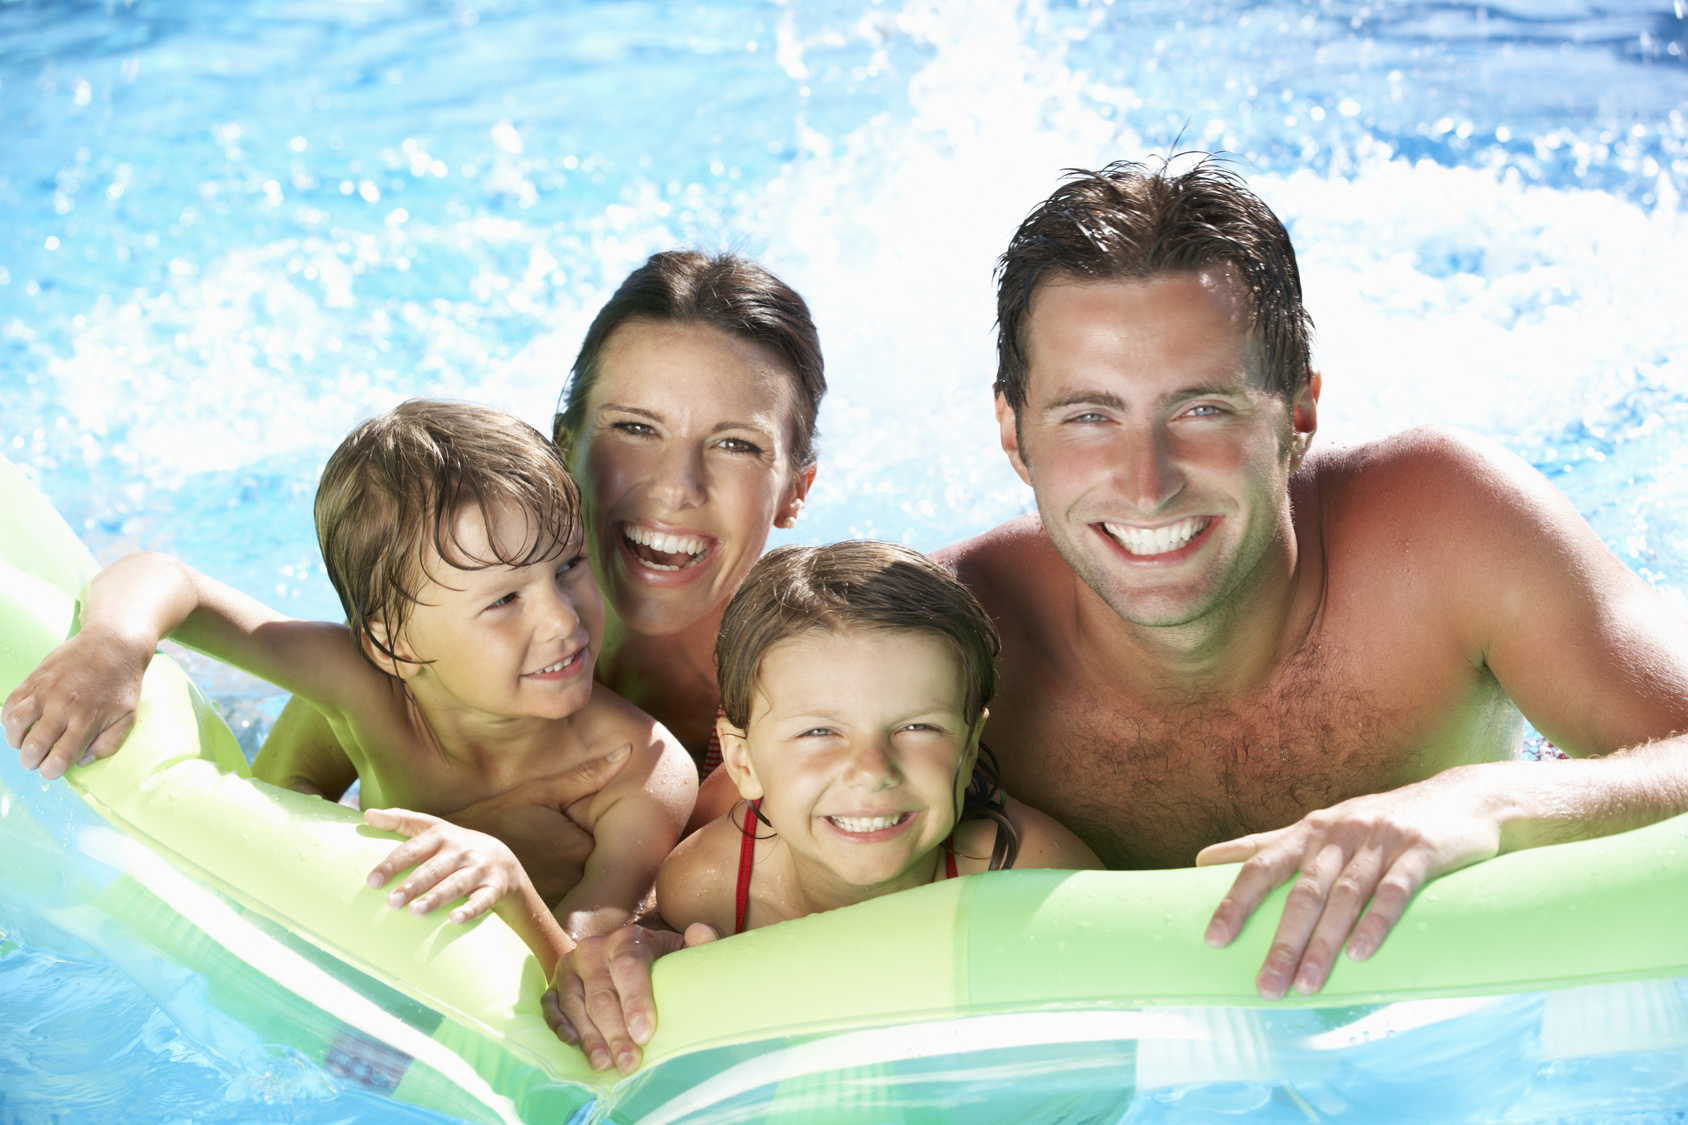 Pool Games to Play With Your Kids